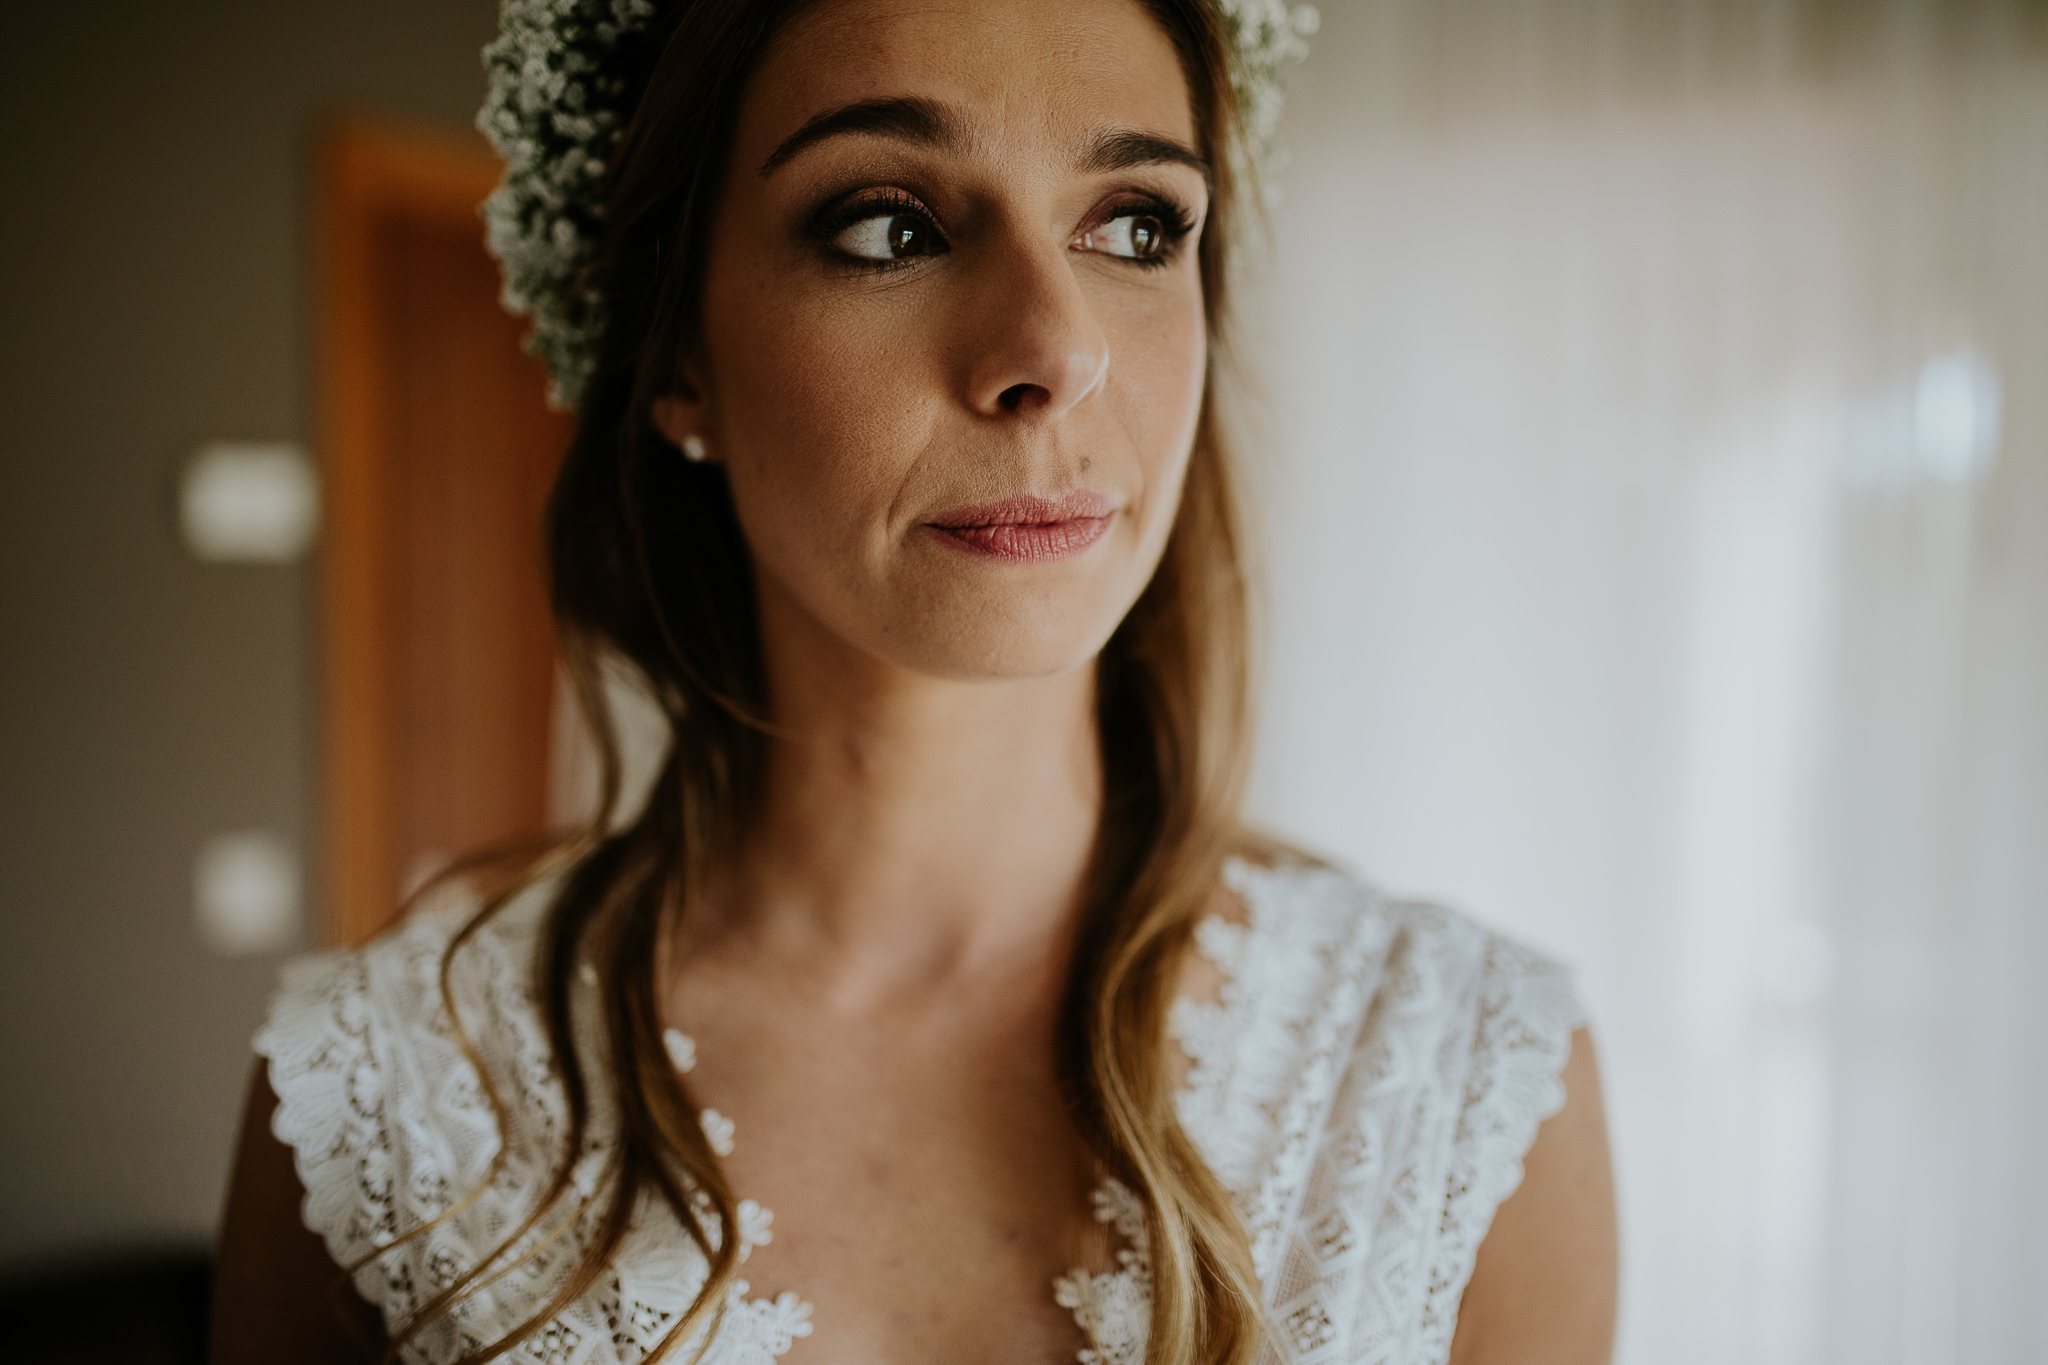 romina_thomas_destination_wedding_photography_fotografia_de_casamento_lisbon_sintra_penha_longa_resort-21